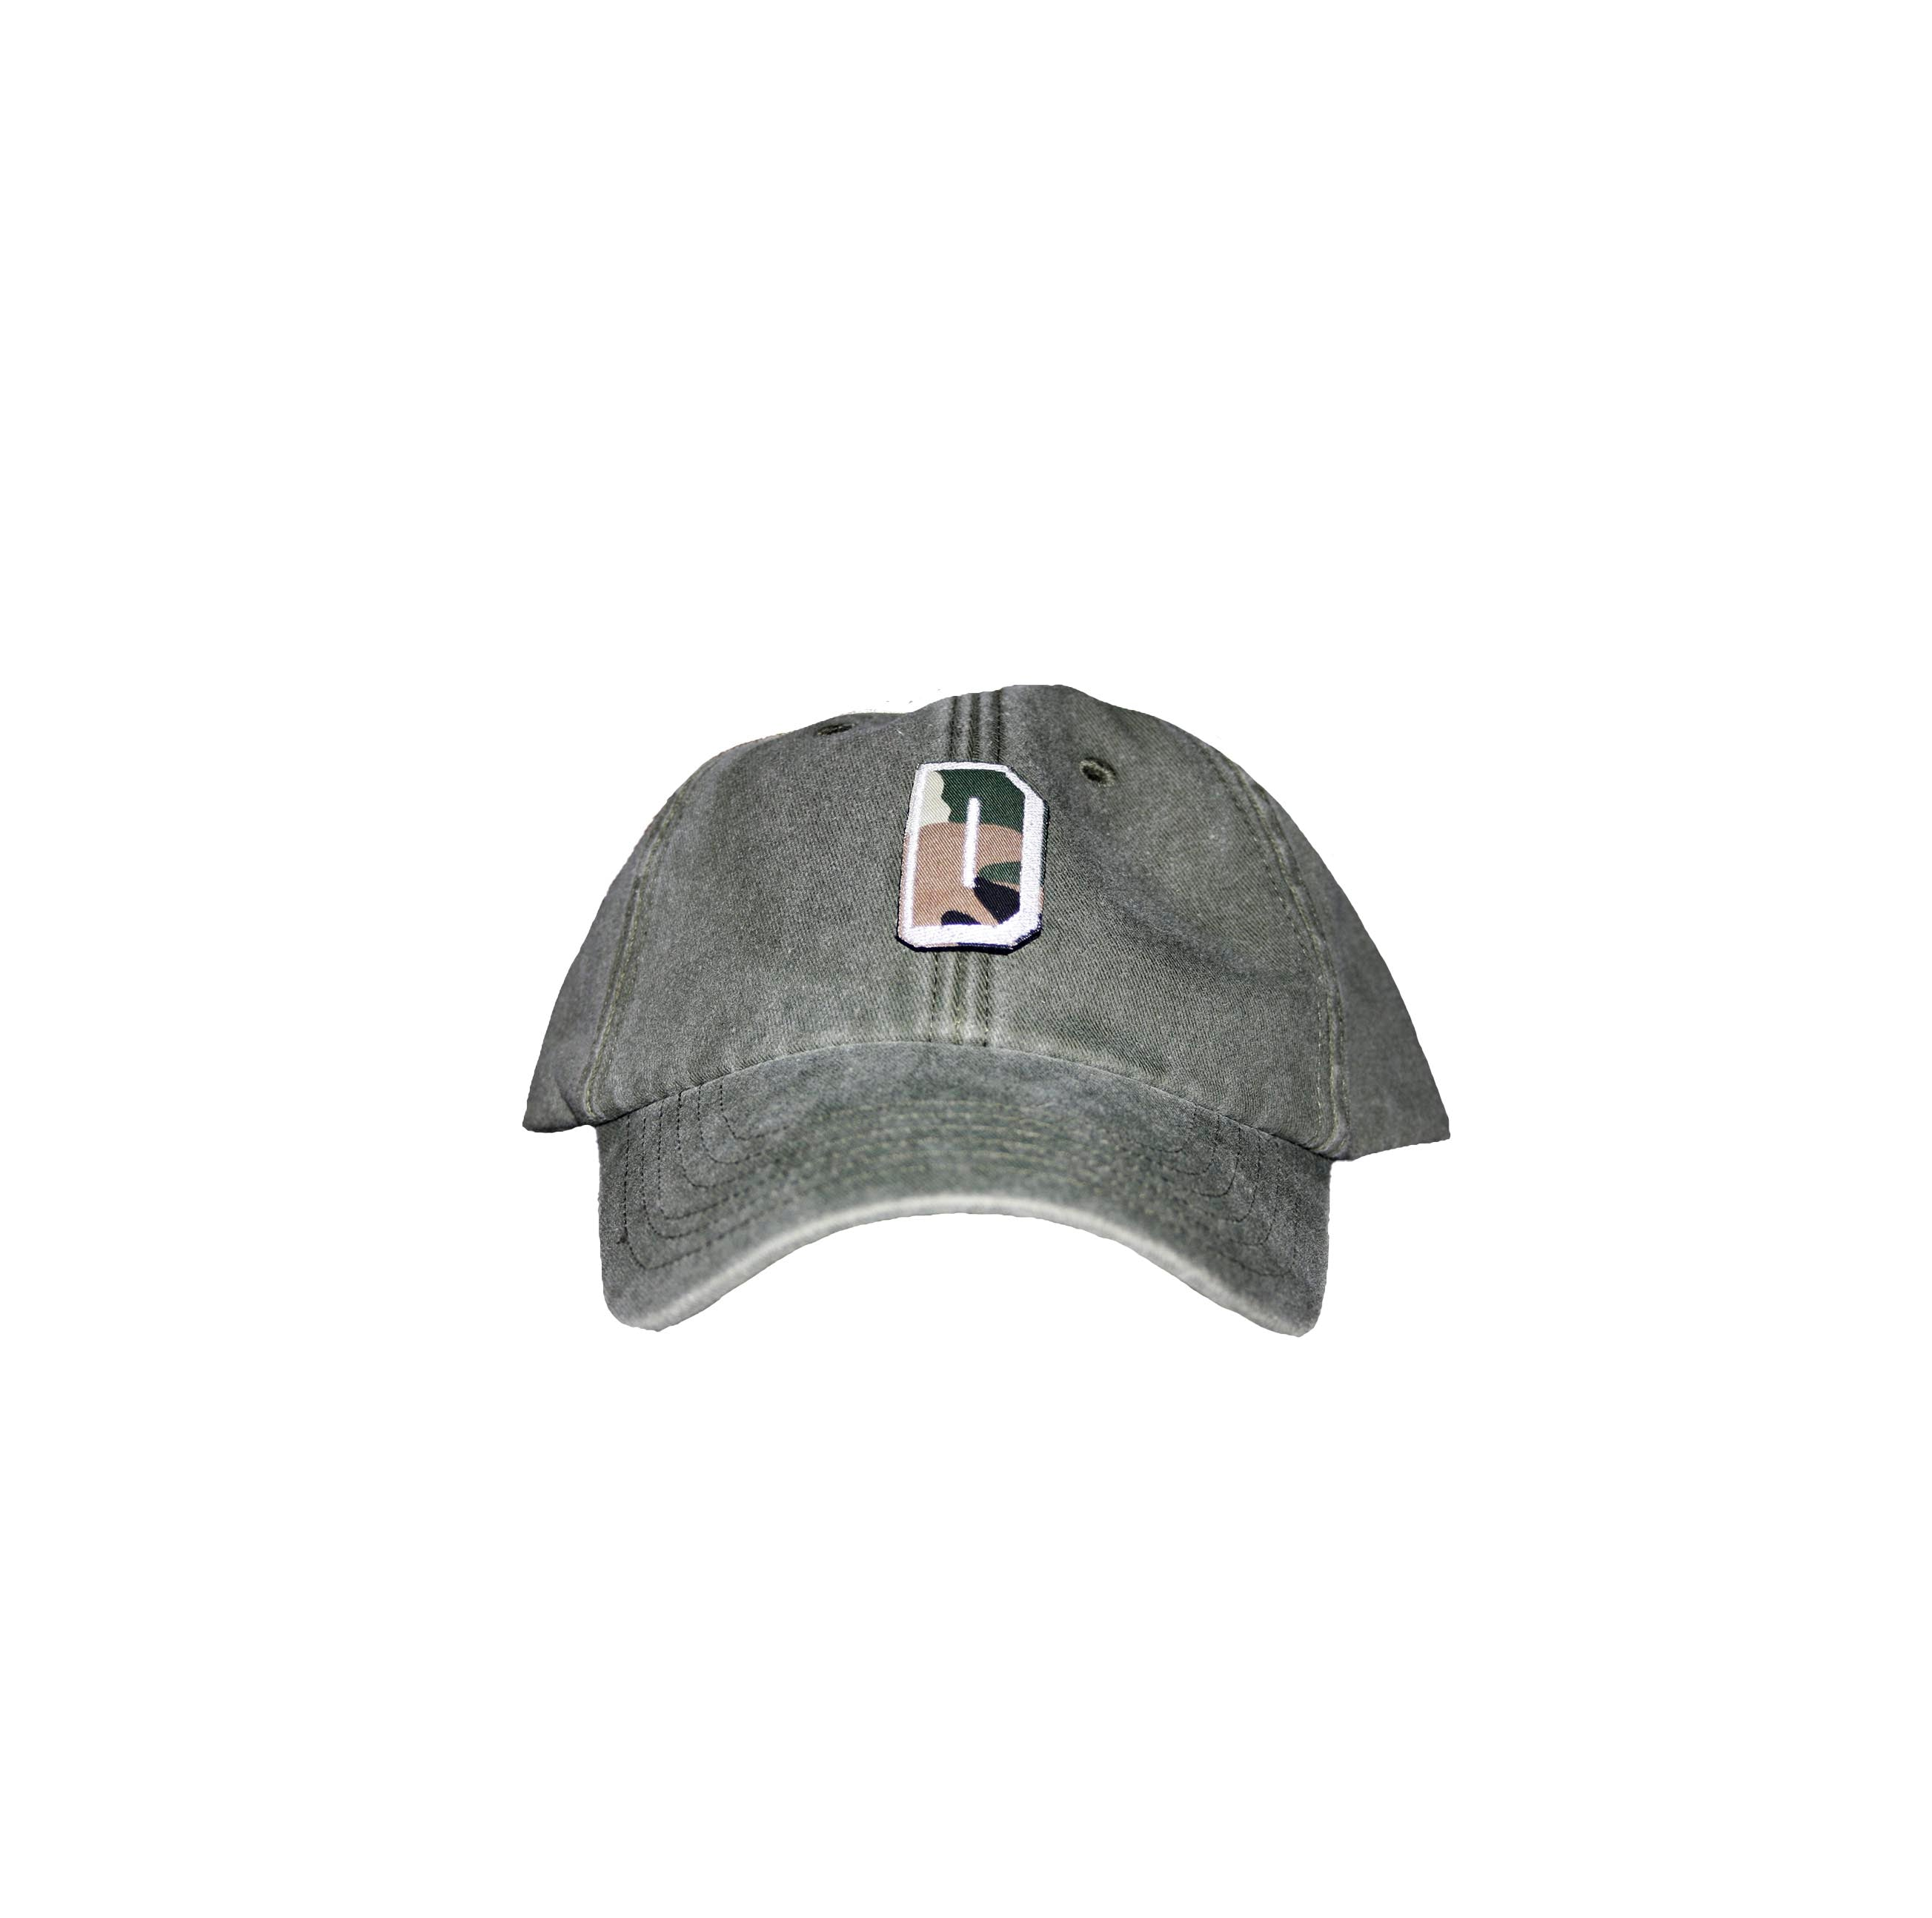 Customised Baseball Cap